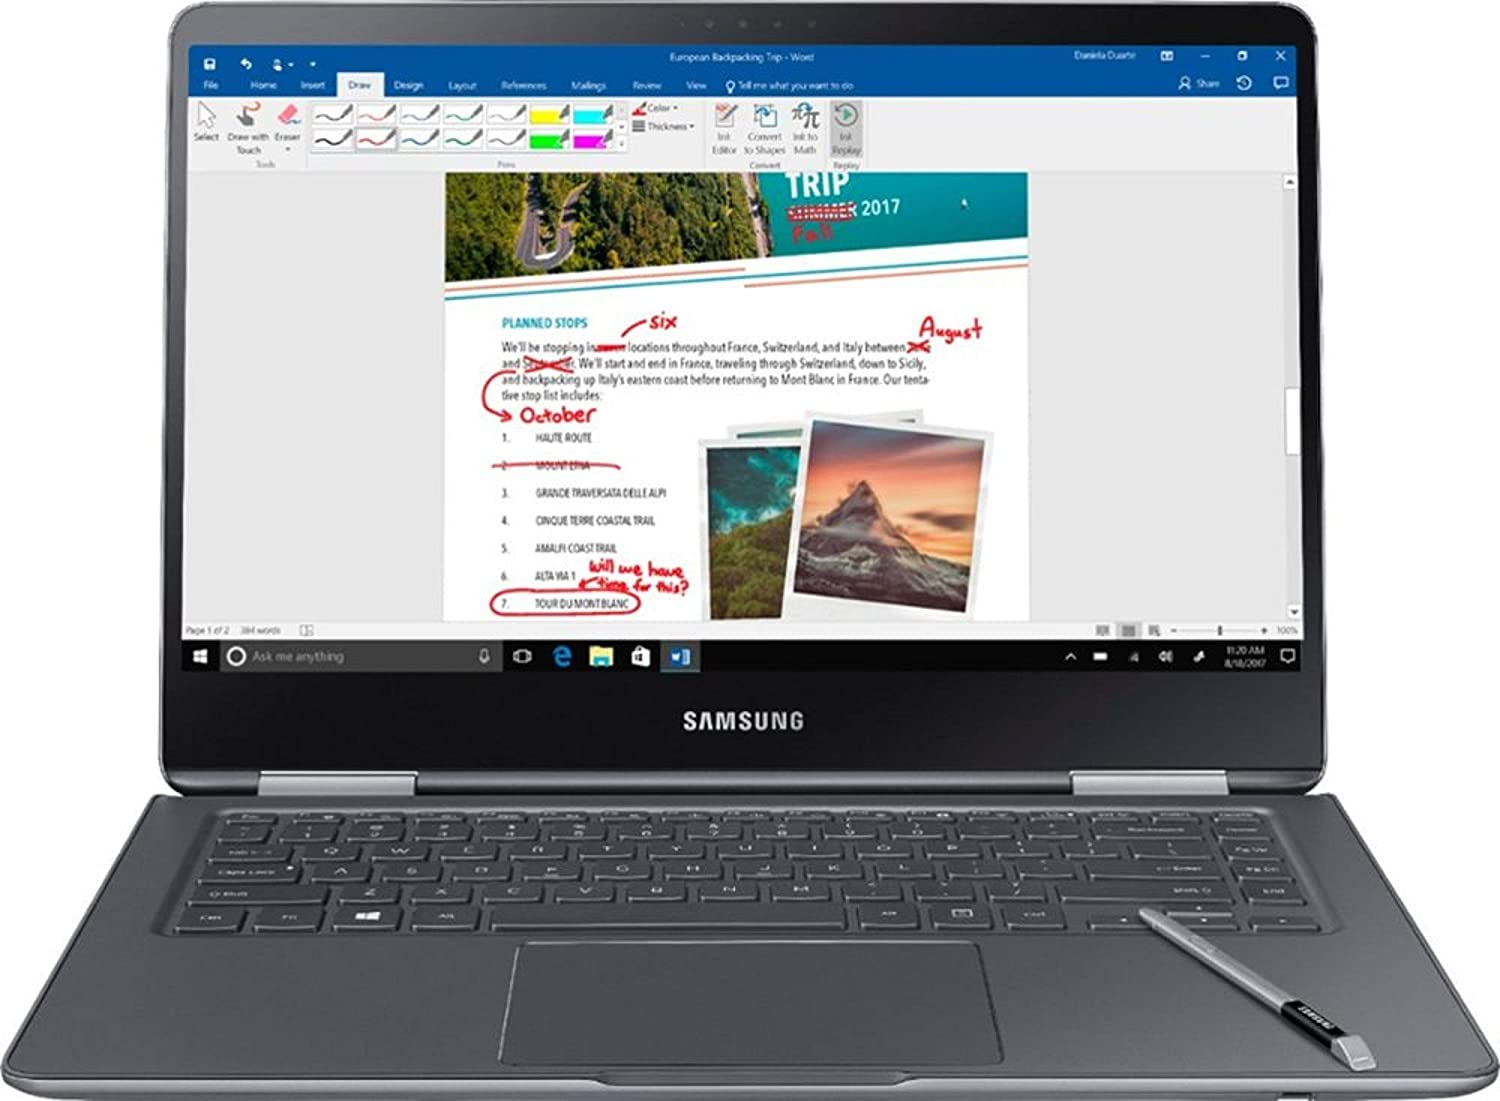 """Amazon.com: Samsung Notebook 9 Pro NP940X5N-X01US 15"""" FHD 2-in-1 Touch  Screen Laptop, 8th Gen Intel Quad-Core i7-8550U Up To 4GHz, 16GB DDR4,  256GB SSD, Backlit Keyboard, Windows 10, Built-in S Pen, Titan"""